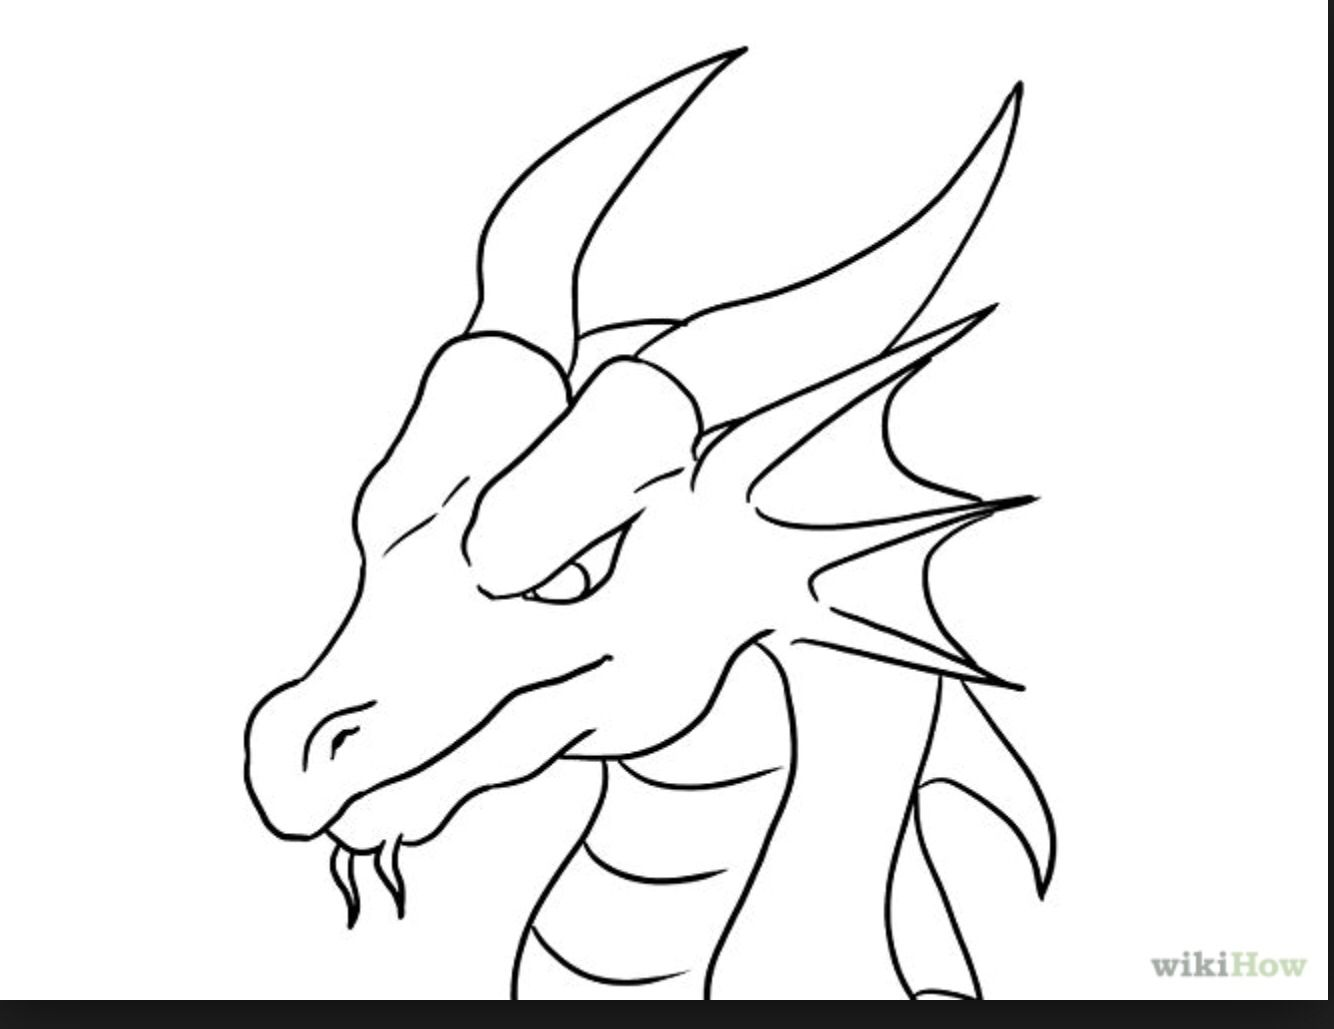 25 best ideas about easy dragon drawings on pinterest for Easy to make sketches